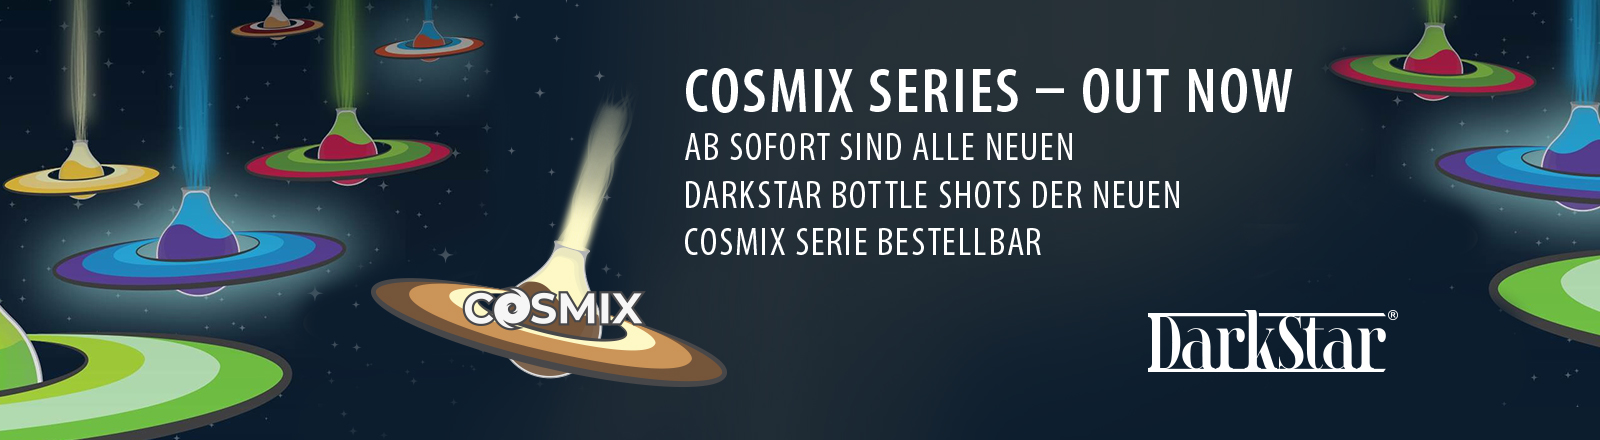 DarkStar COSMIX Series